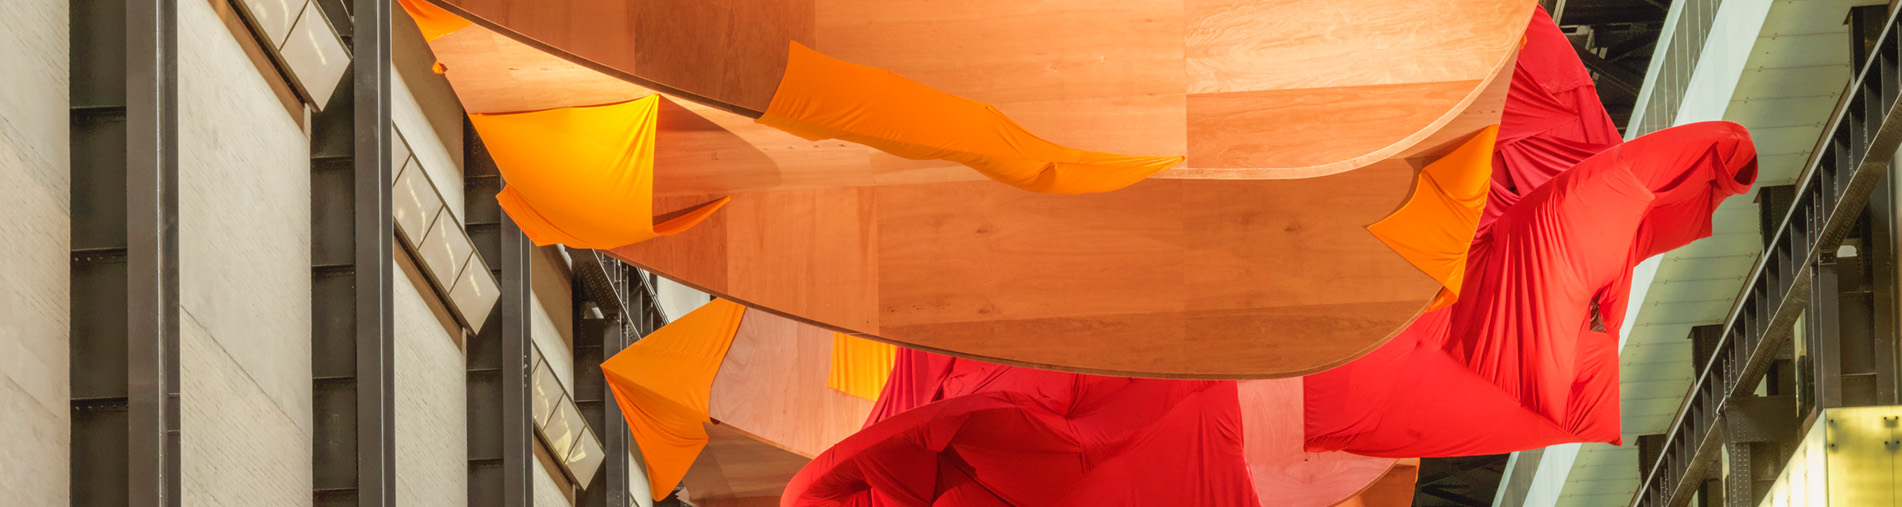 I Don't Know / Richard Tuttle / Tate Modern